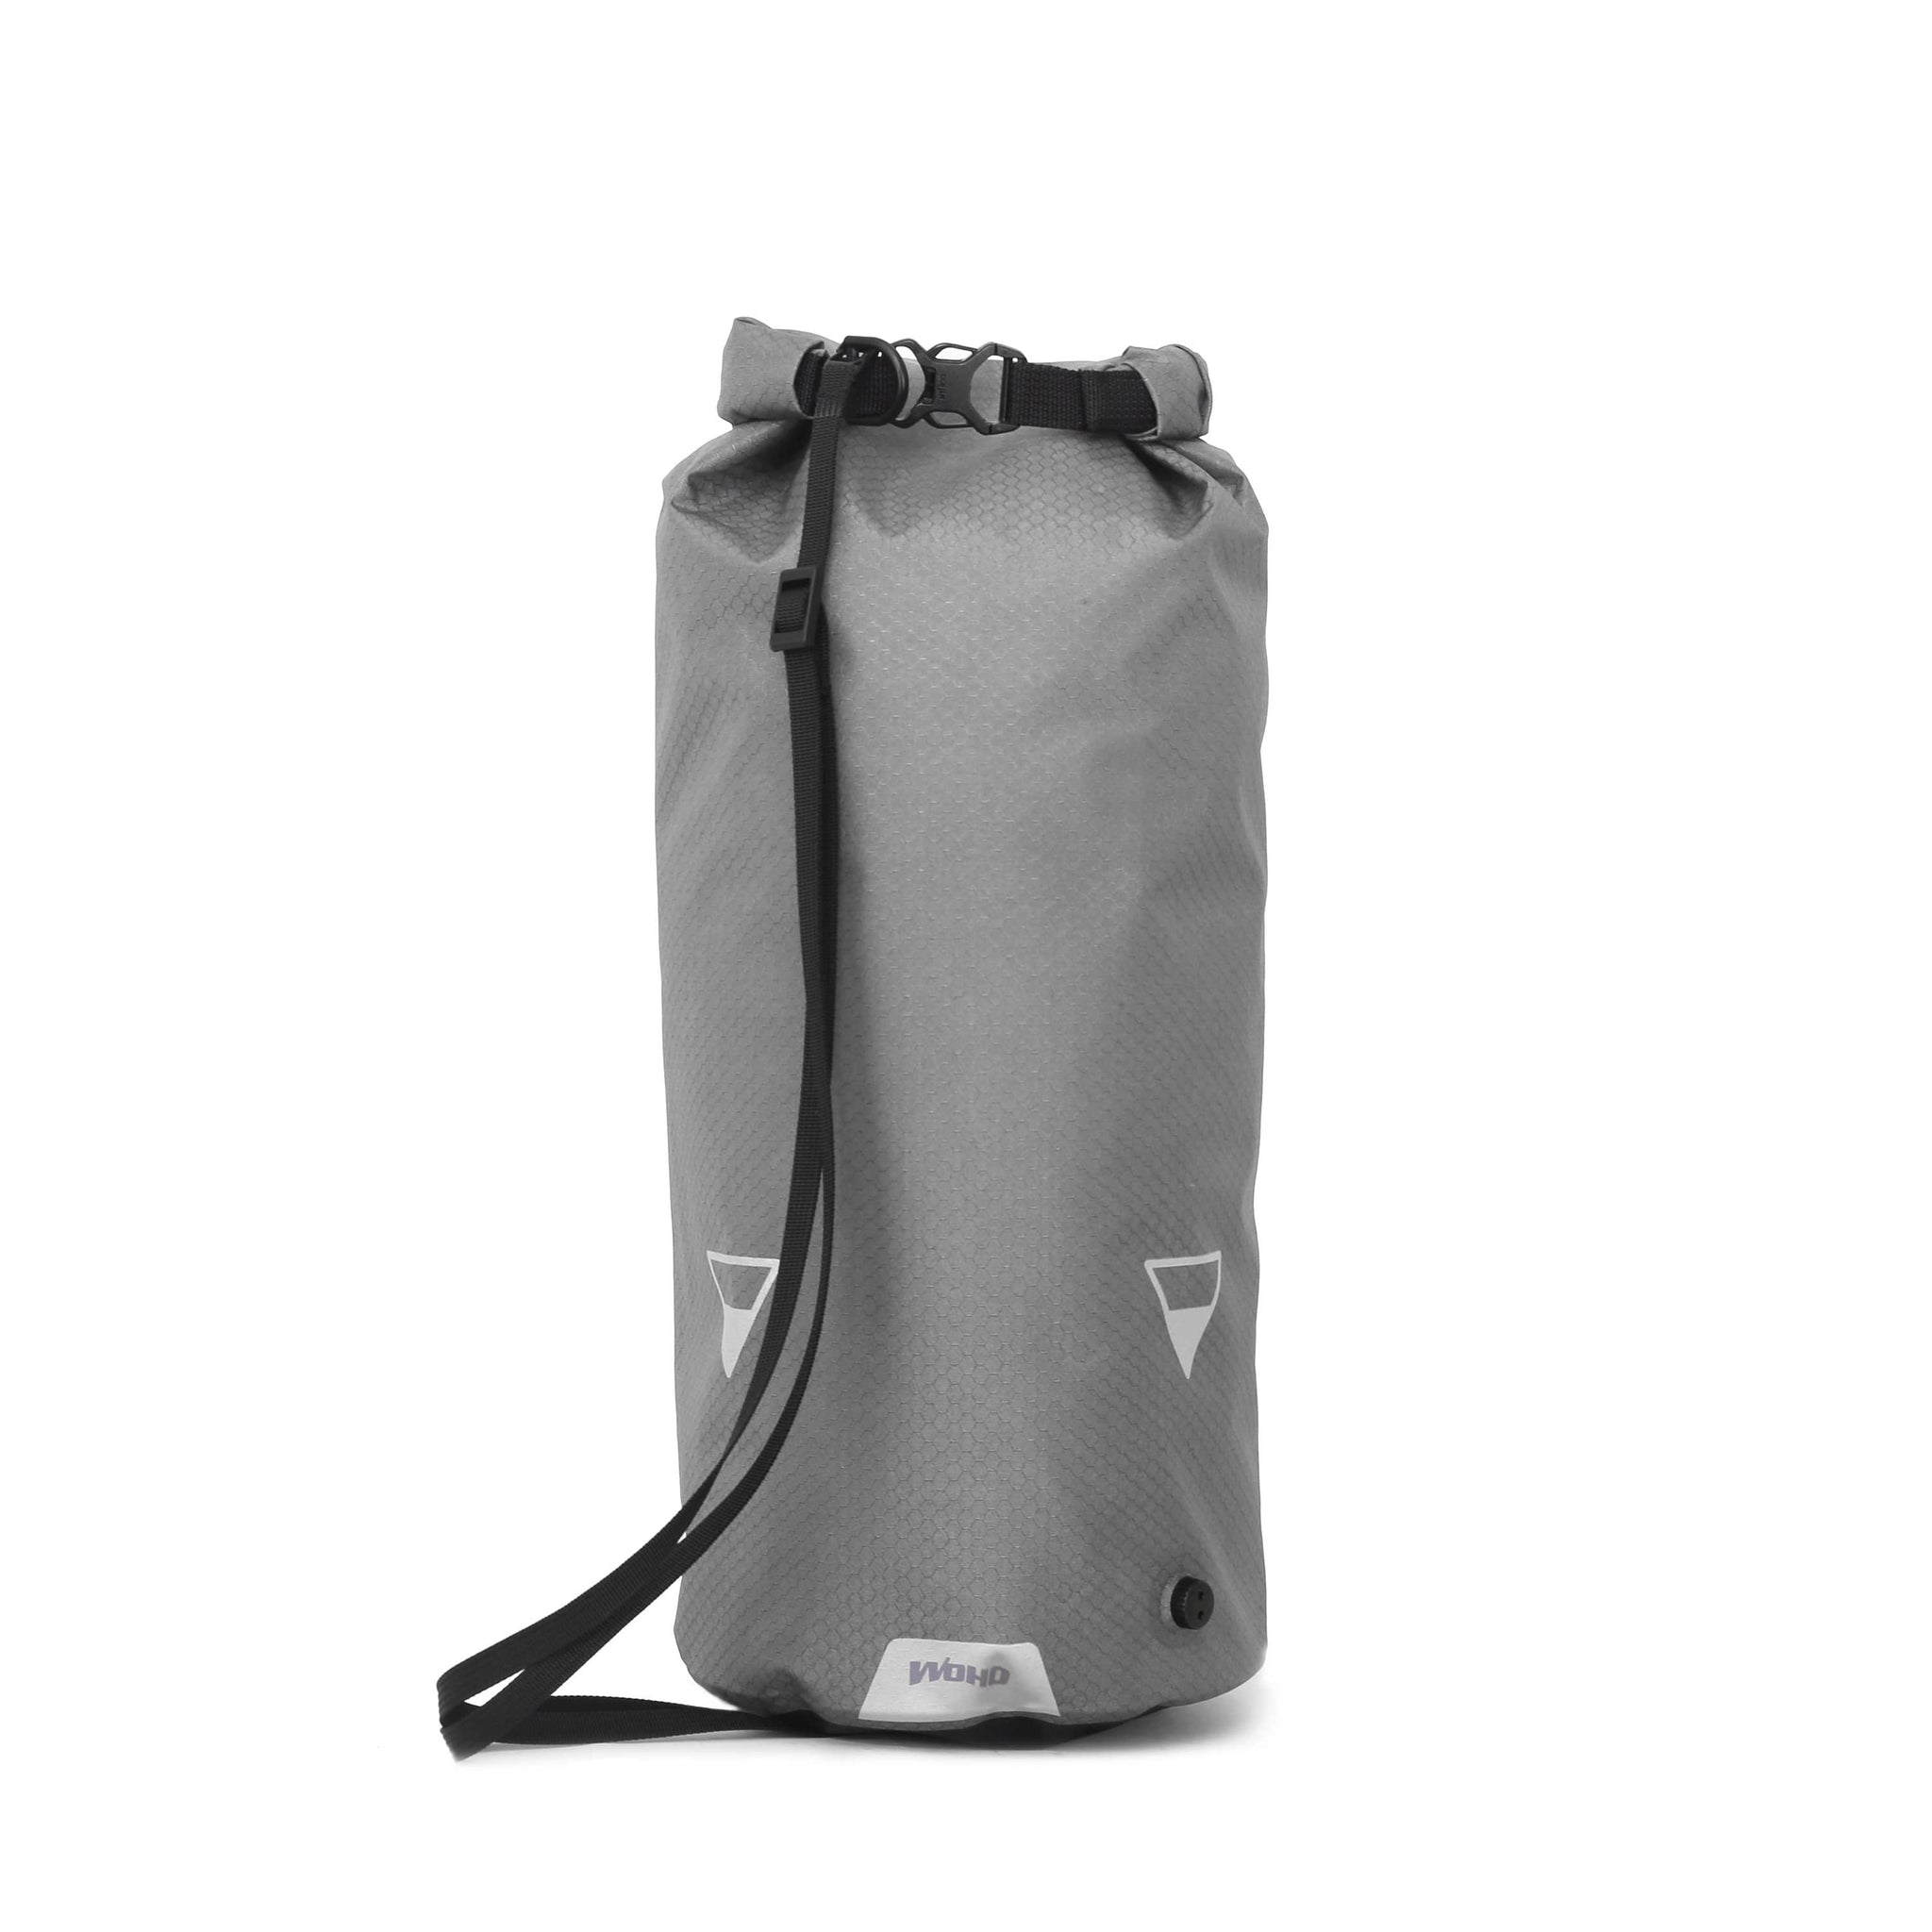 WOHO XTouring DRY Bag 15L - Cycle Touring Life